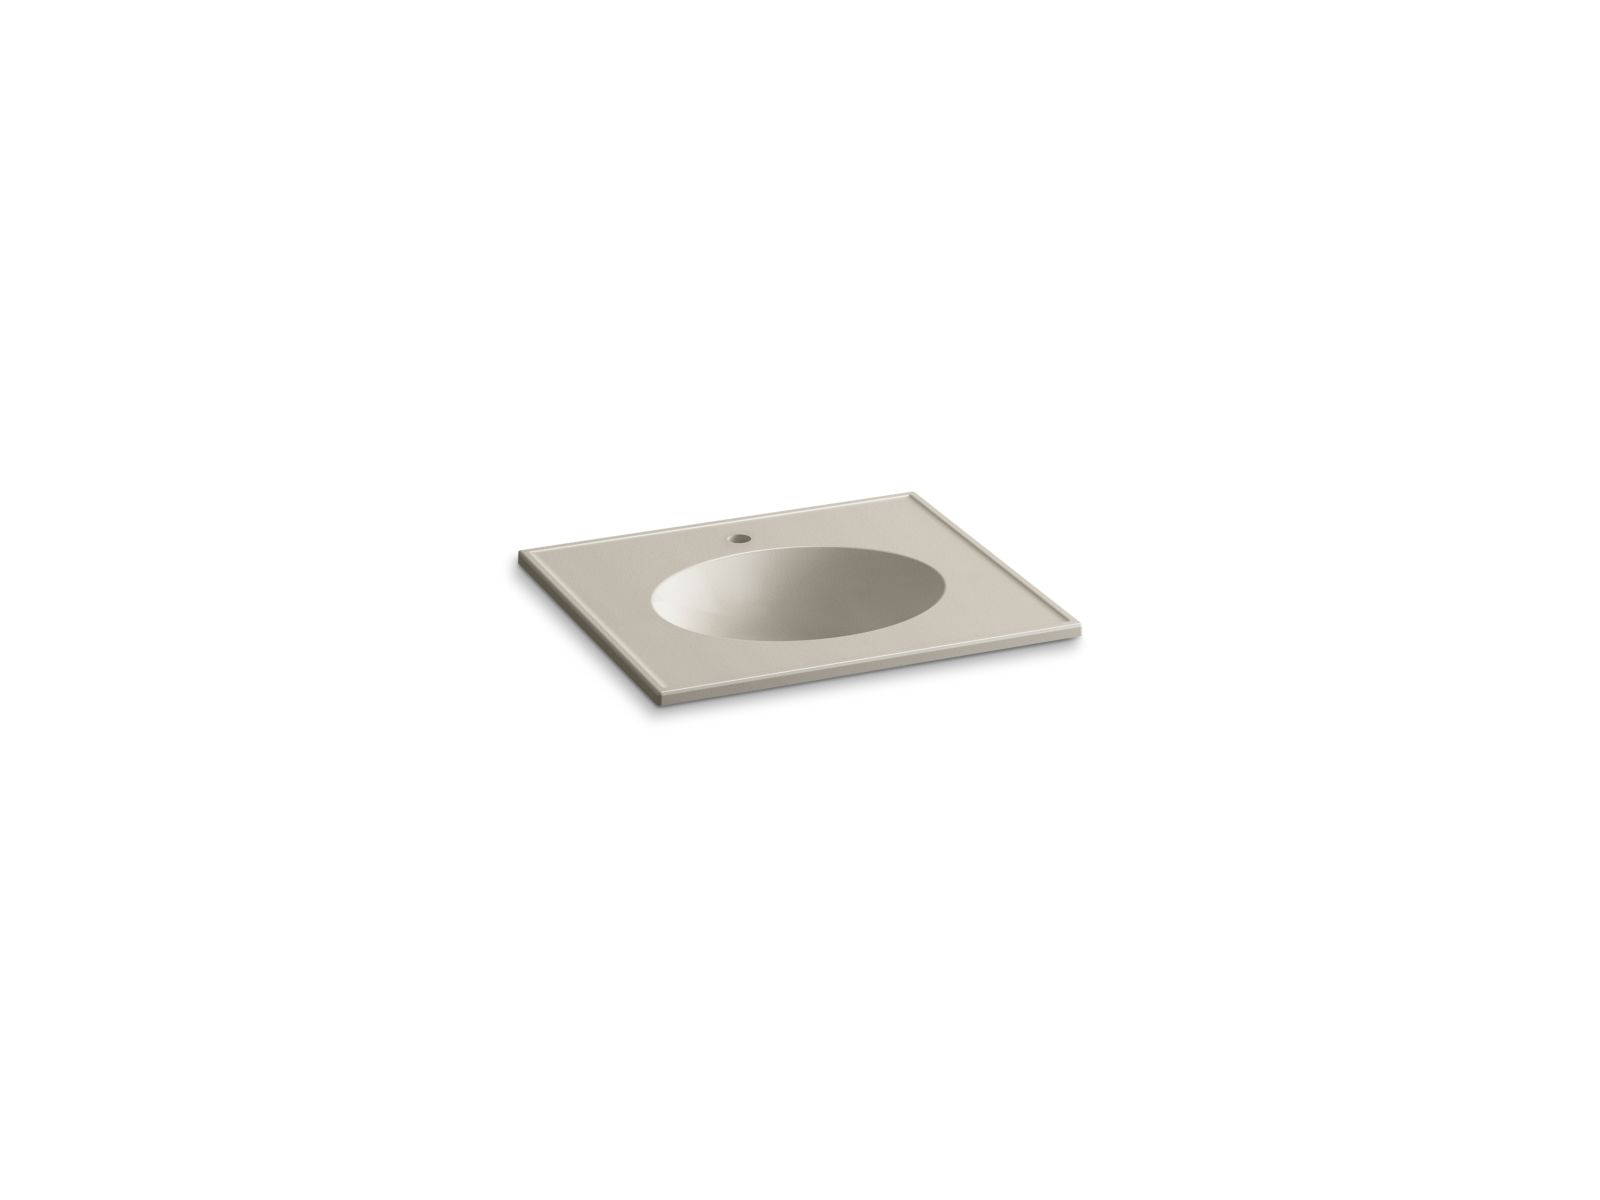 "Kohler Ceramic/Impressions™ K-2791-1-G85 25"" oval vanity-top bathroom sink with single faucet hole Sandbar Impressions"